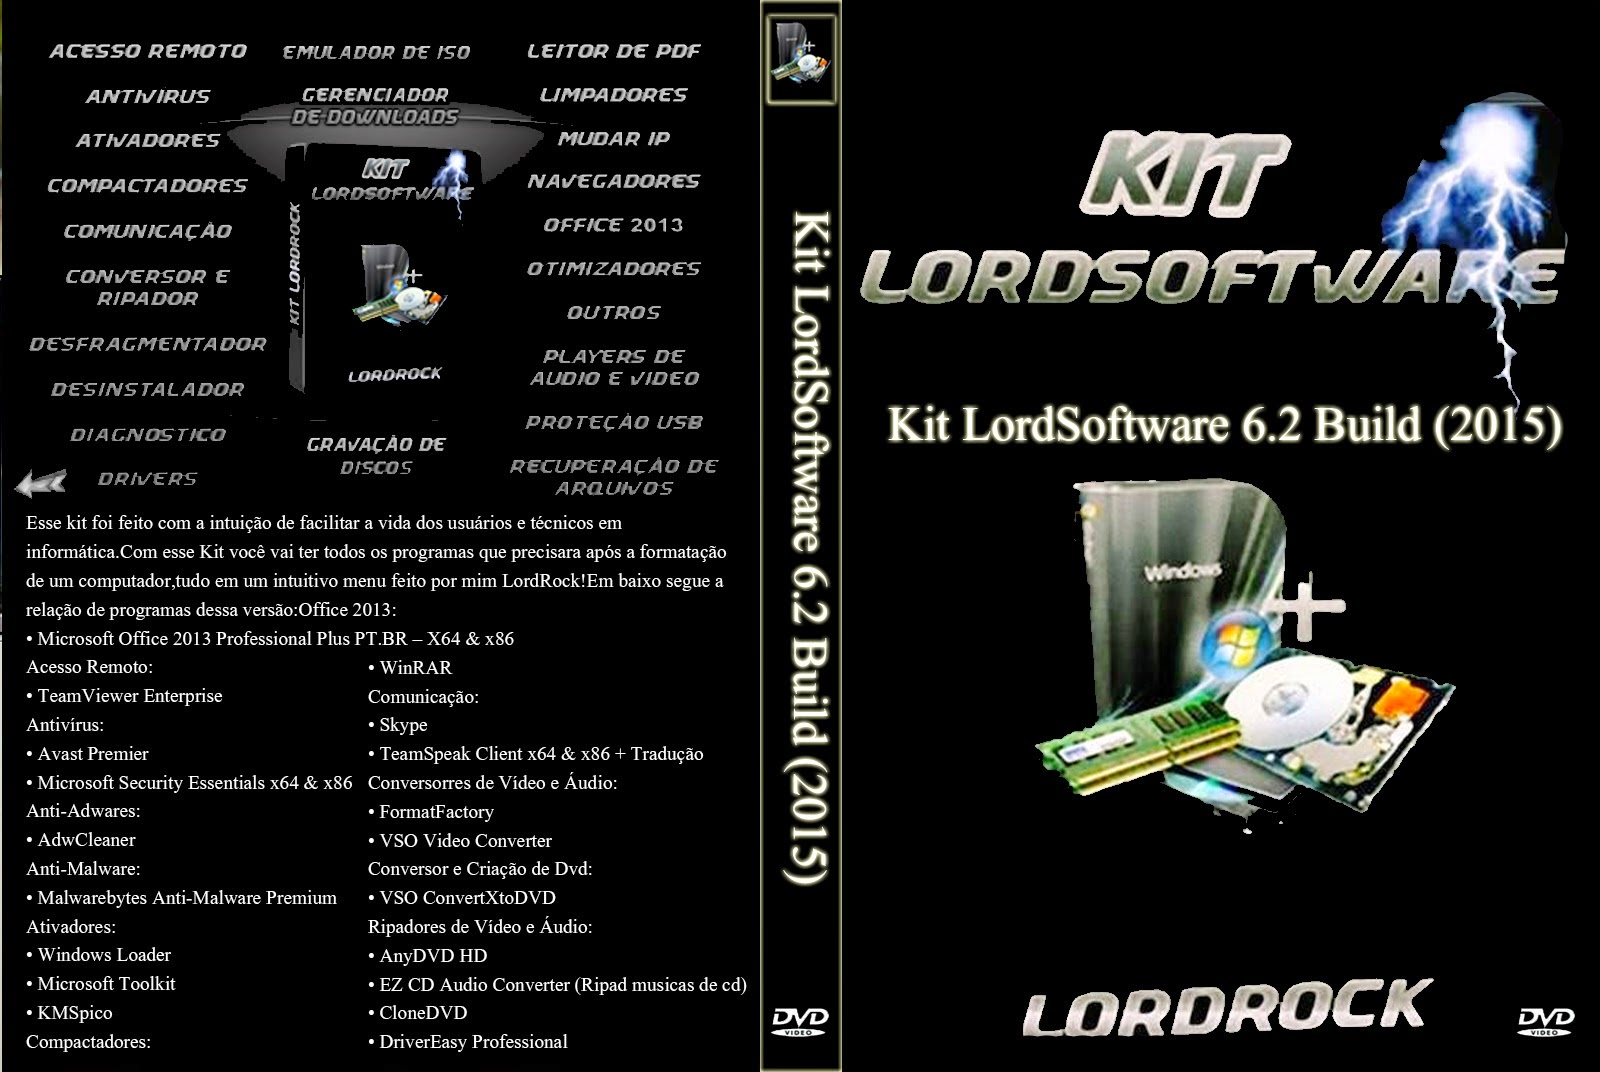 Download Kit LordSoftware 2015 7.1 Build 01.01.2015 Kit 2BLordSoftware